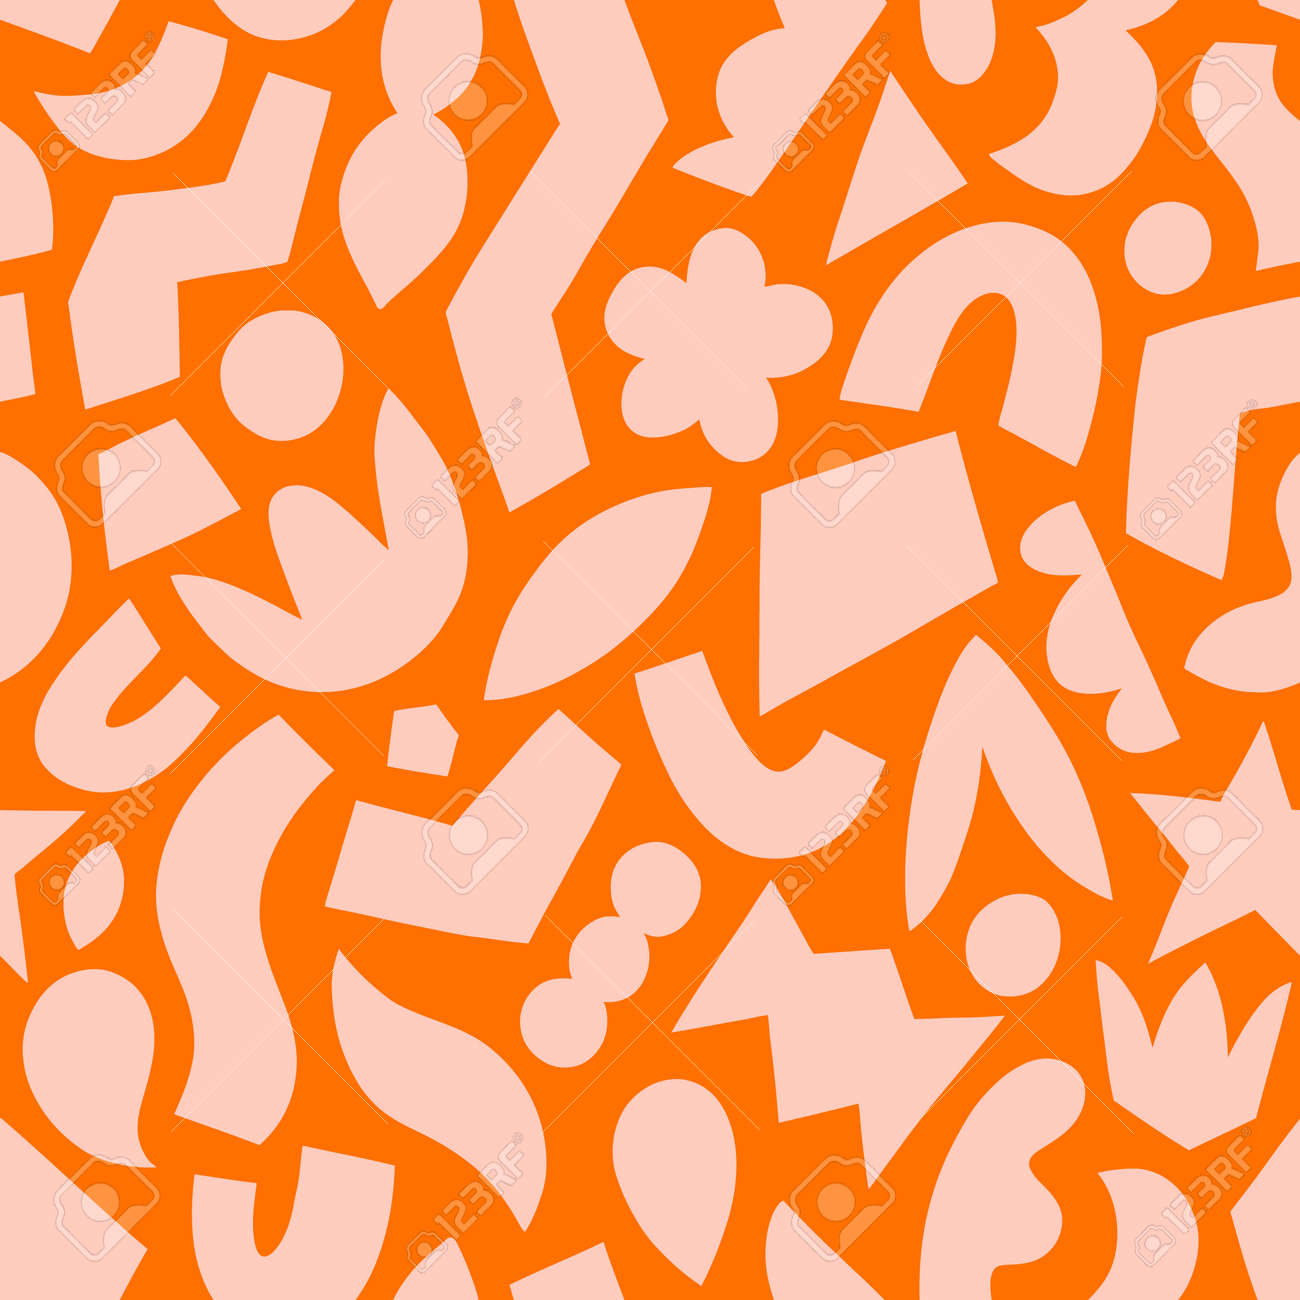 Paper cut out, pink on orange, fun abstract geometric shapes, vector seamless pattern - 162599336